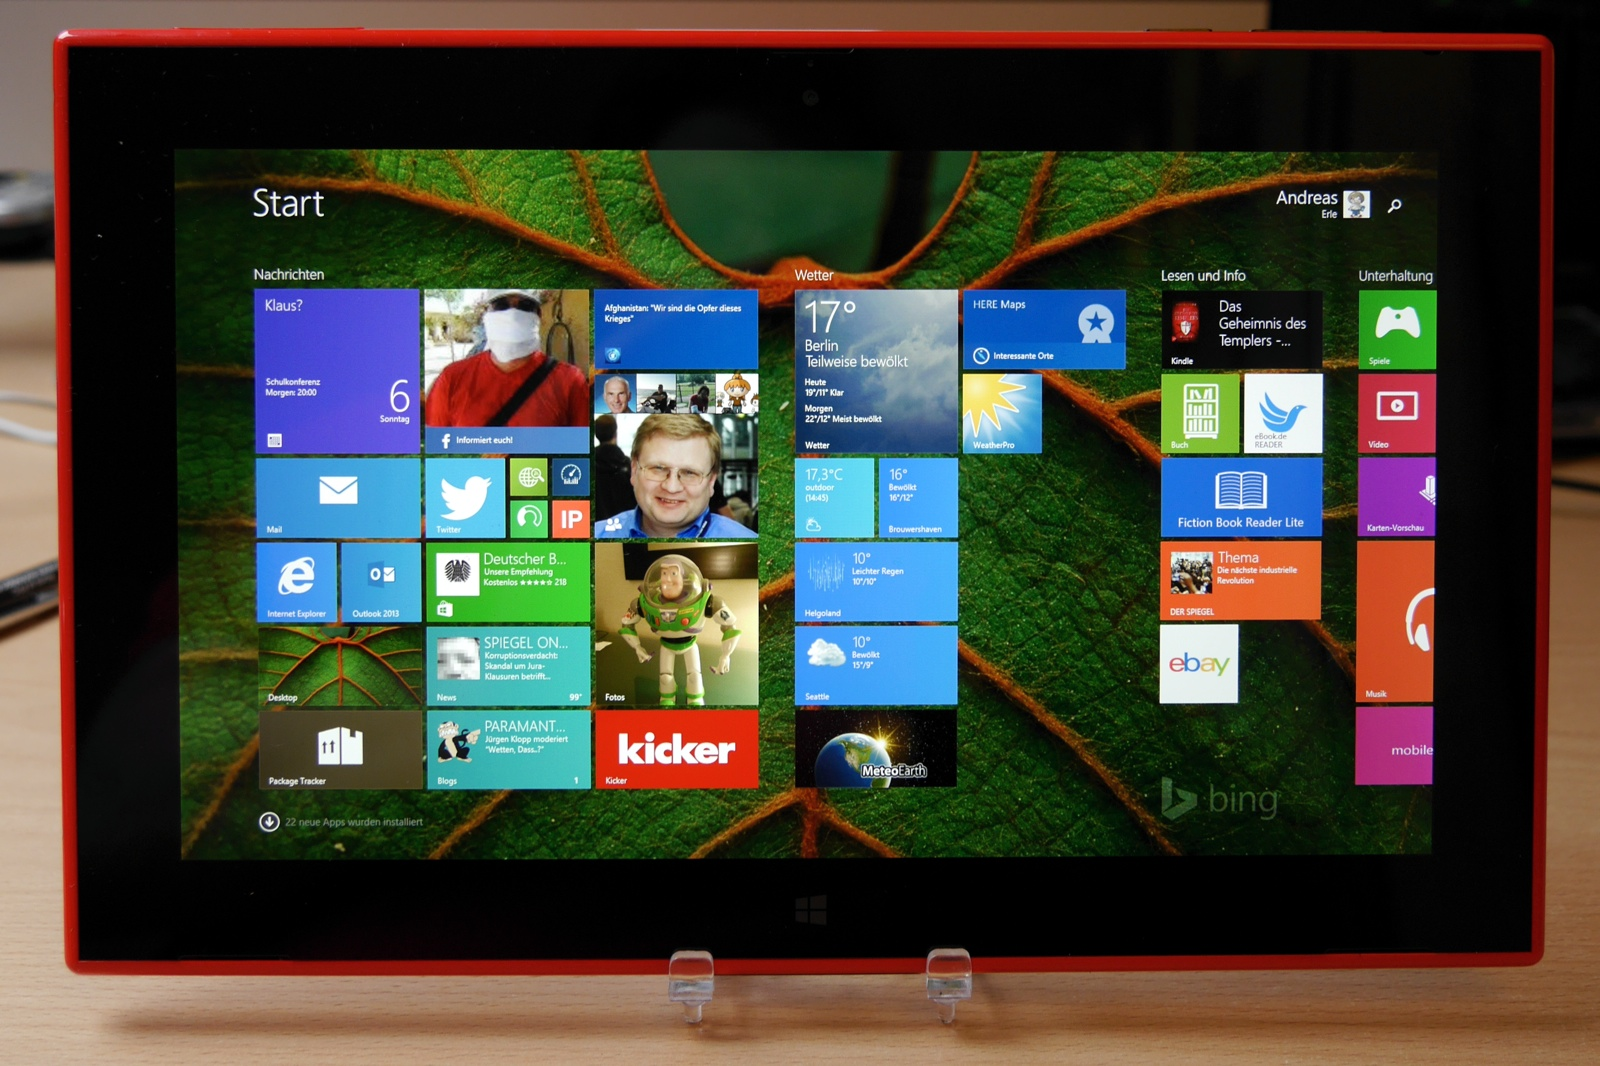 android auf windows tablet installieren deutsch